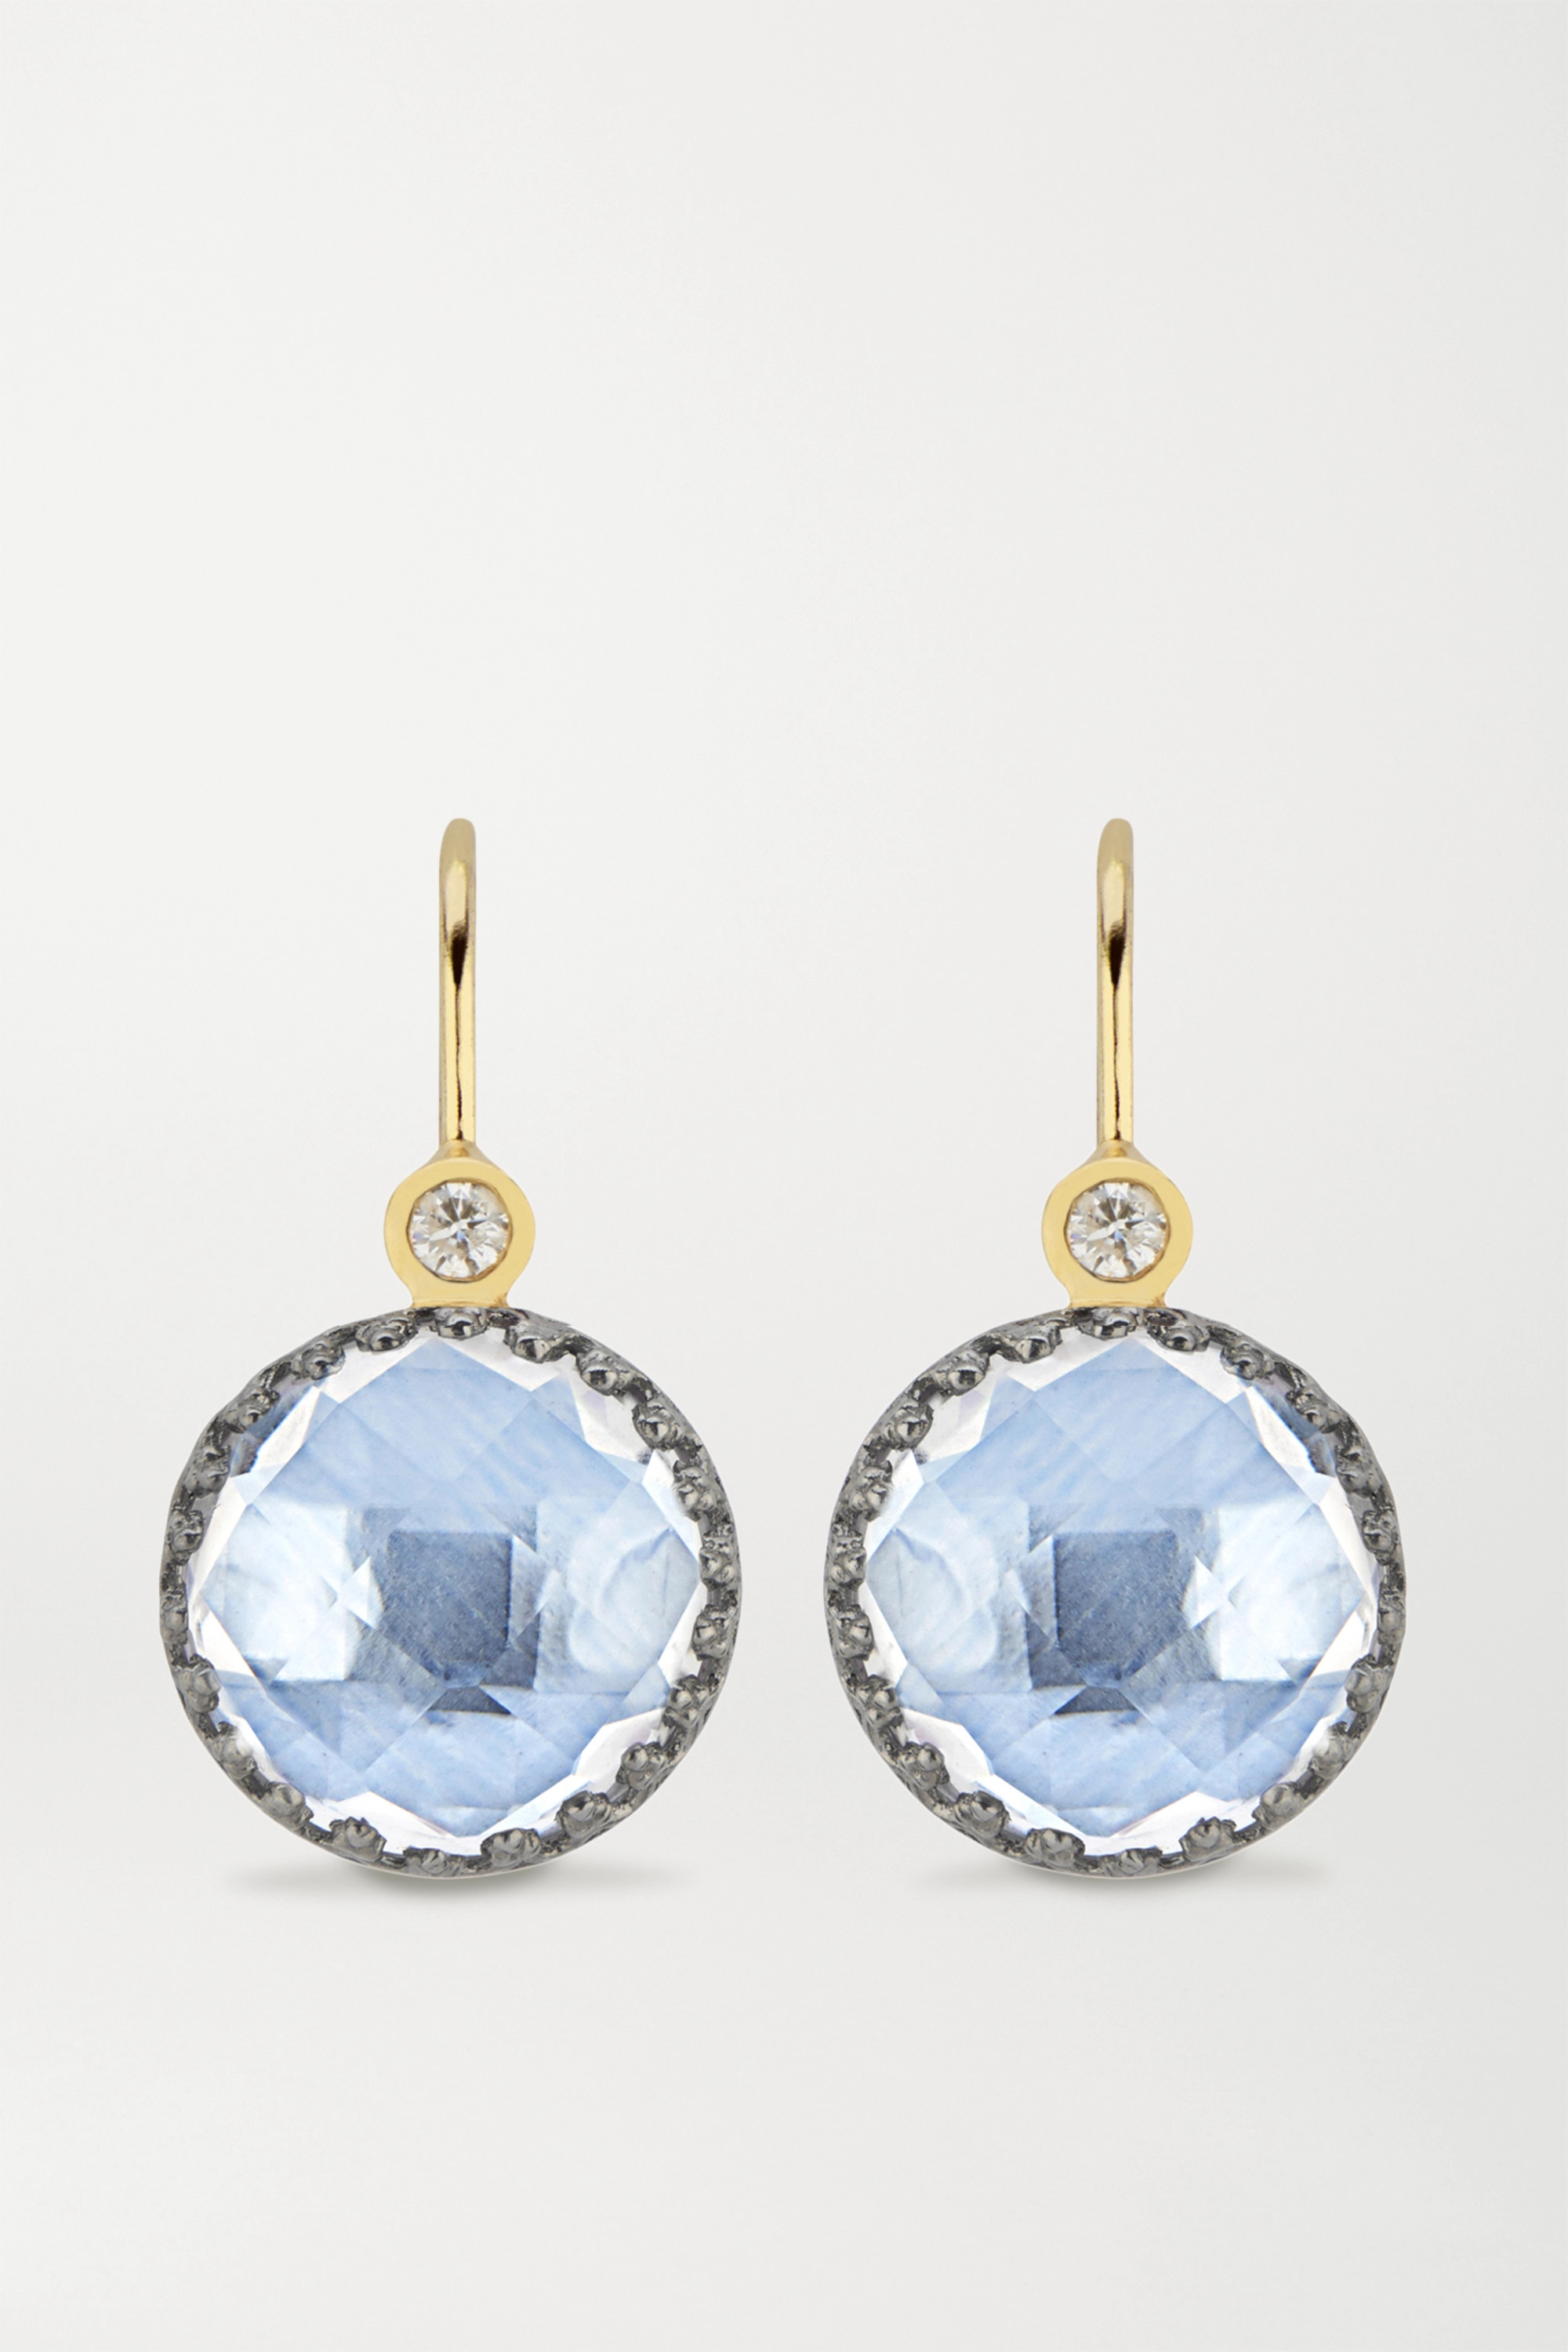 LARKSPUR & HAWK Olivia Button small rhodium-dipped quartz and diamond earrings